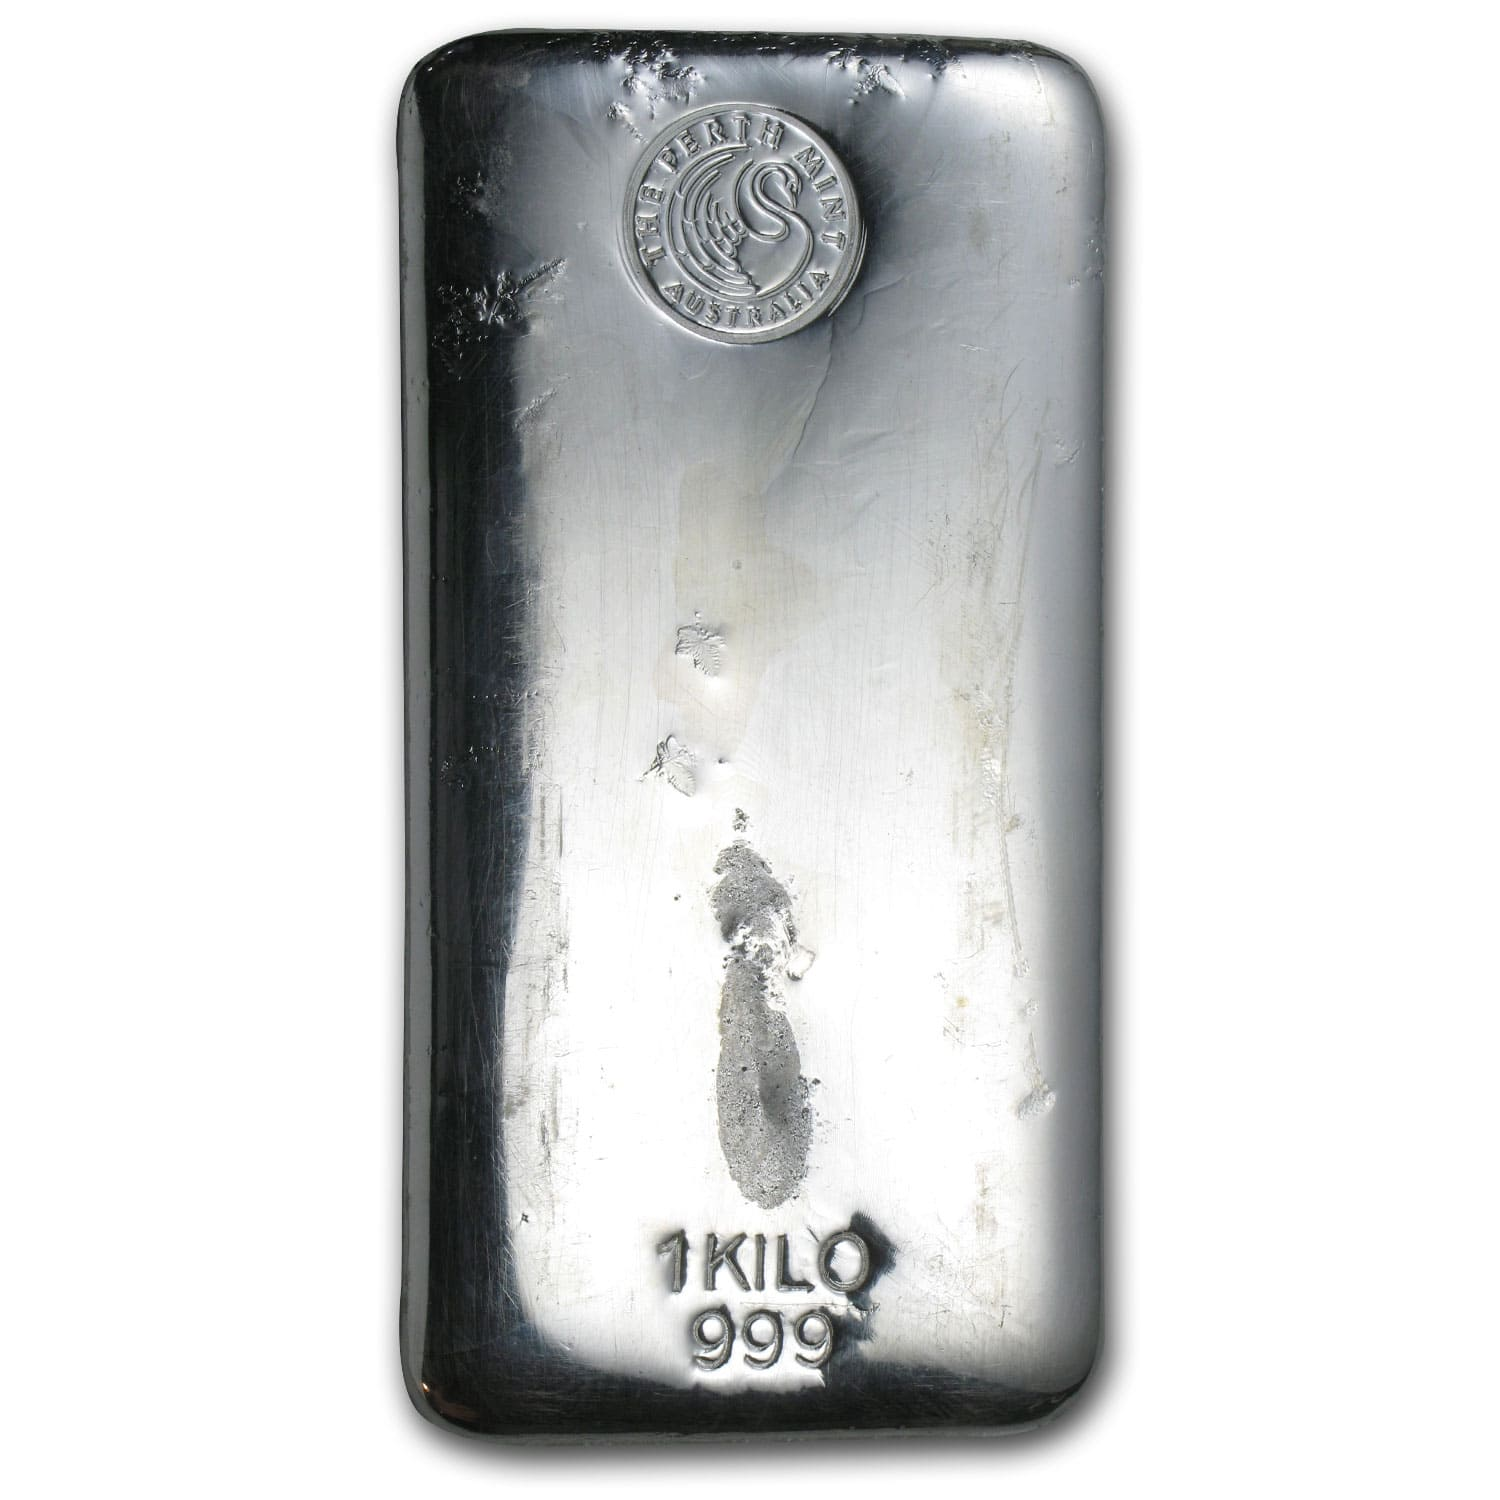 1 Kilo Silver Bar - Perth Mint